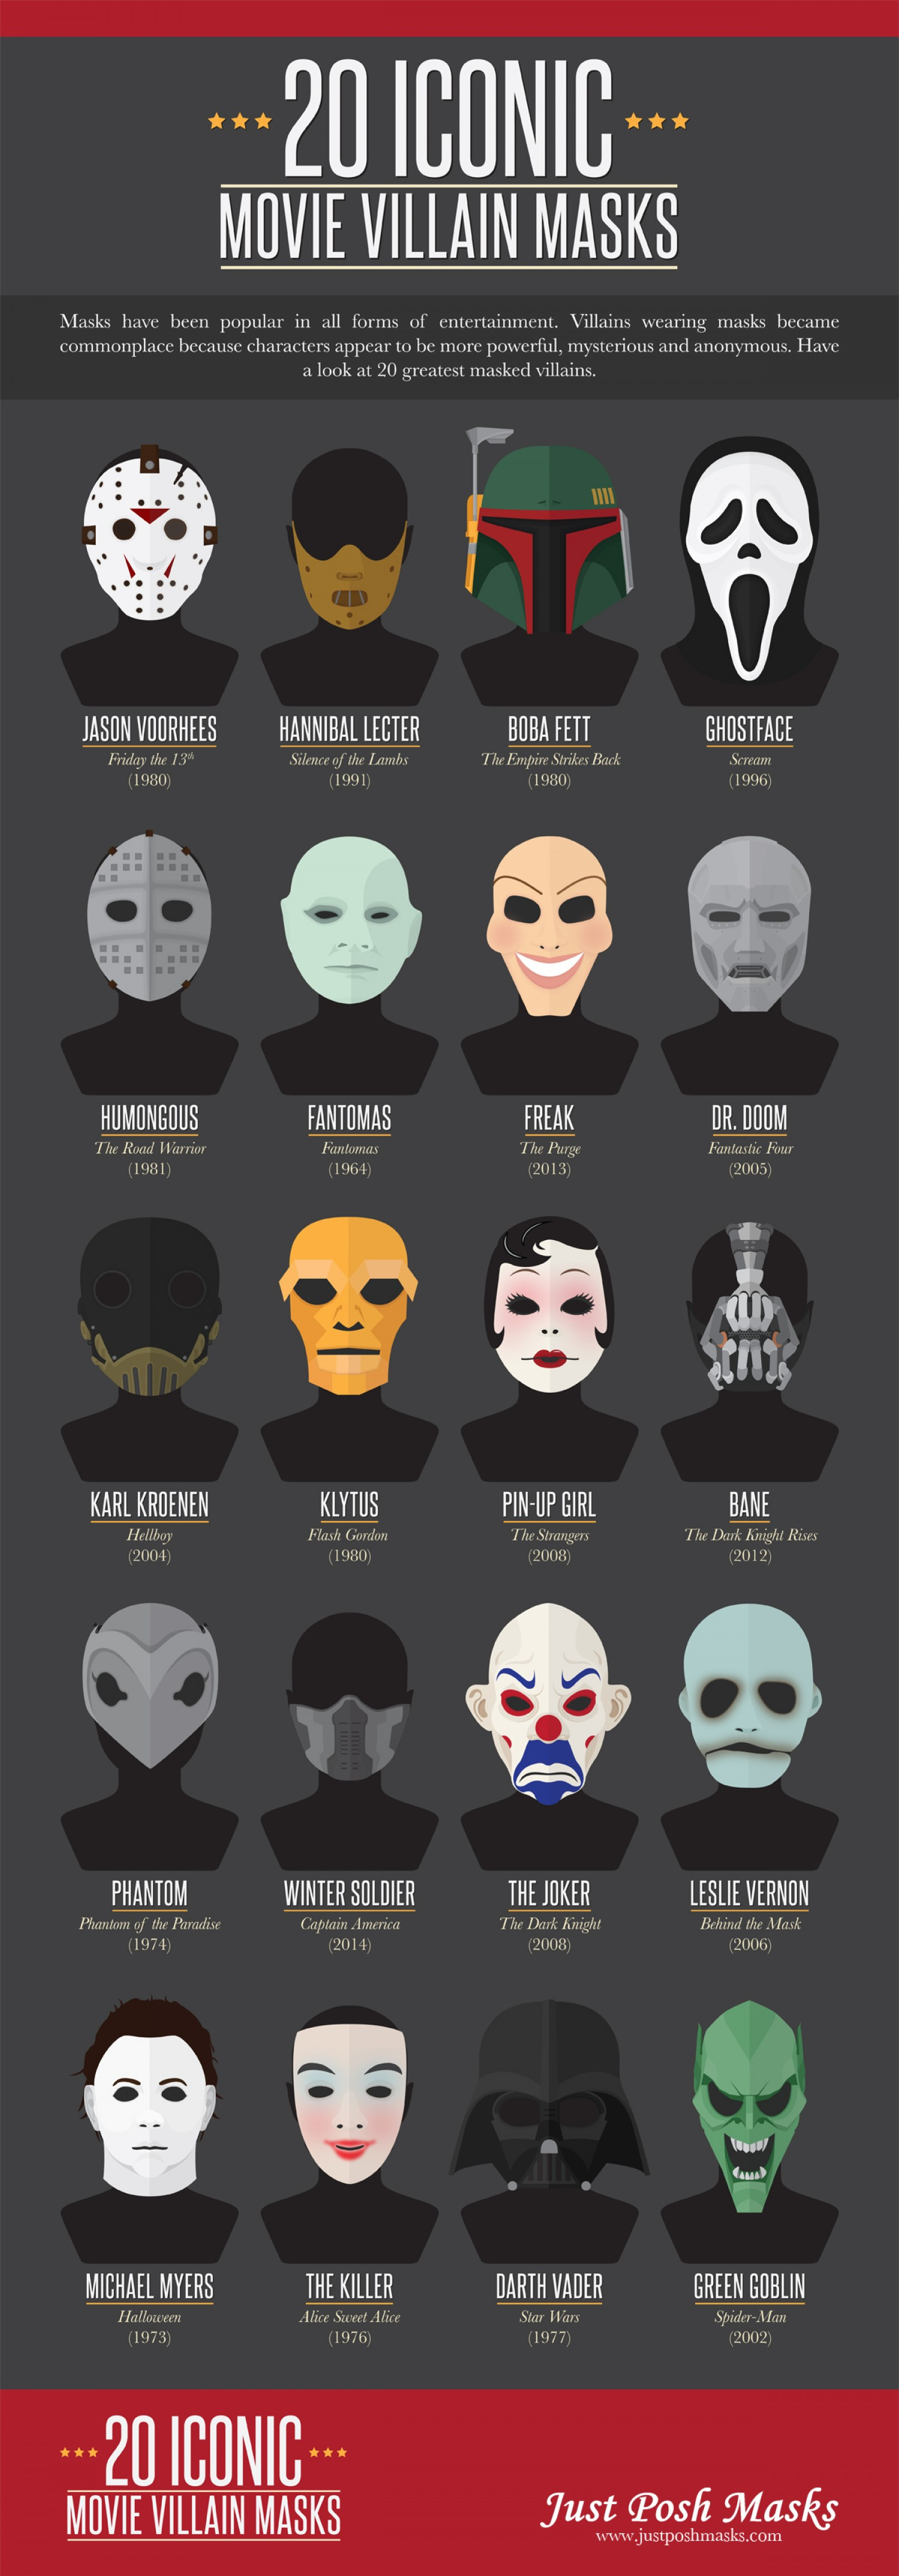 Learning Loyalty Apple Vs Android Multi Device Market together with Infographic 20 Most Iconic Villain Masks In Movie History also Evolucion Del Iphone Infografia Infographic Apple moreover Parent Infographic likewise Nokia 5 Specifications. on apple infographic